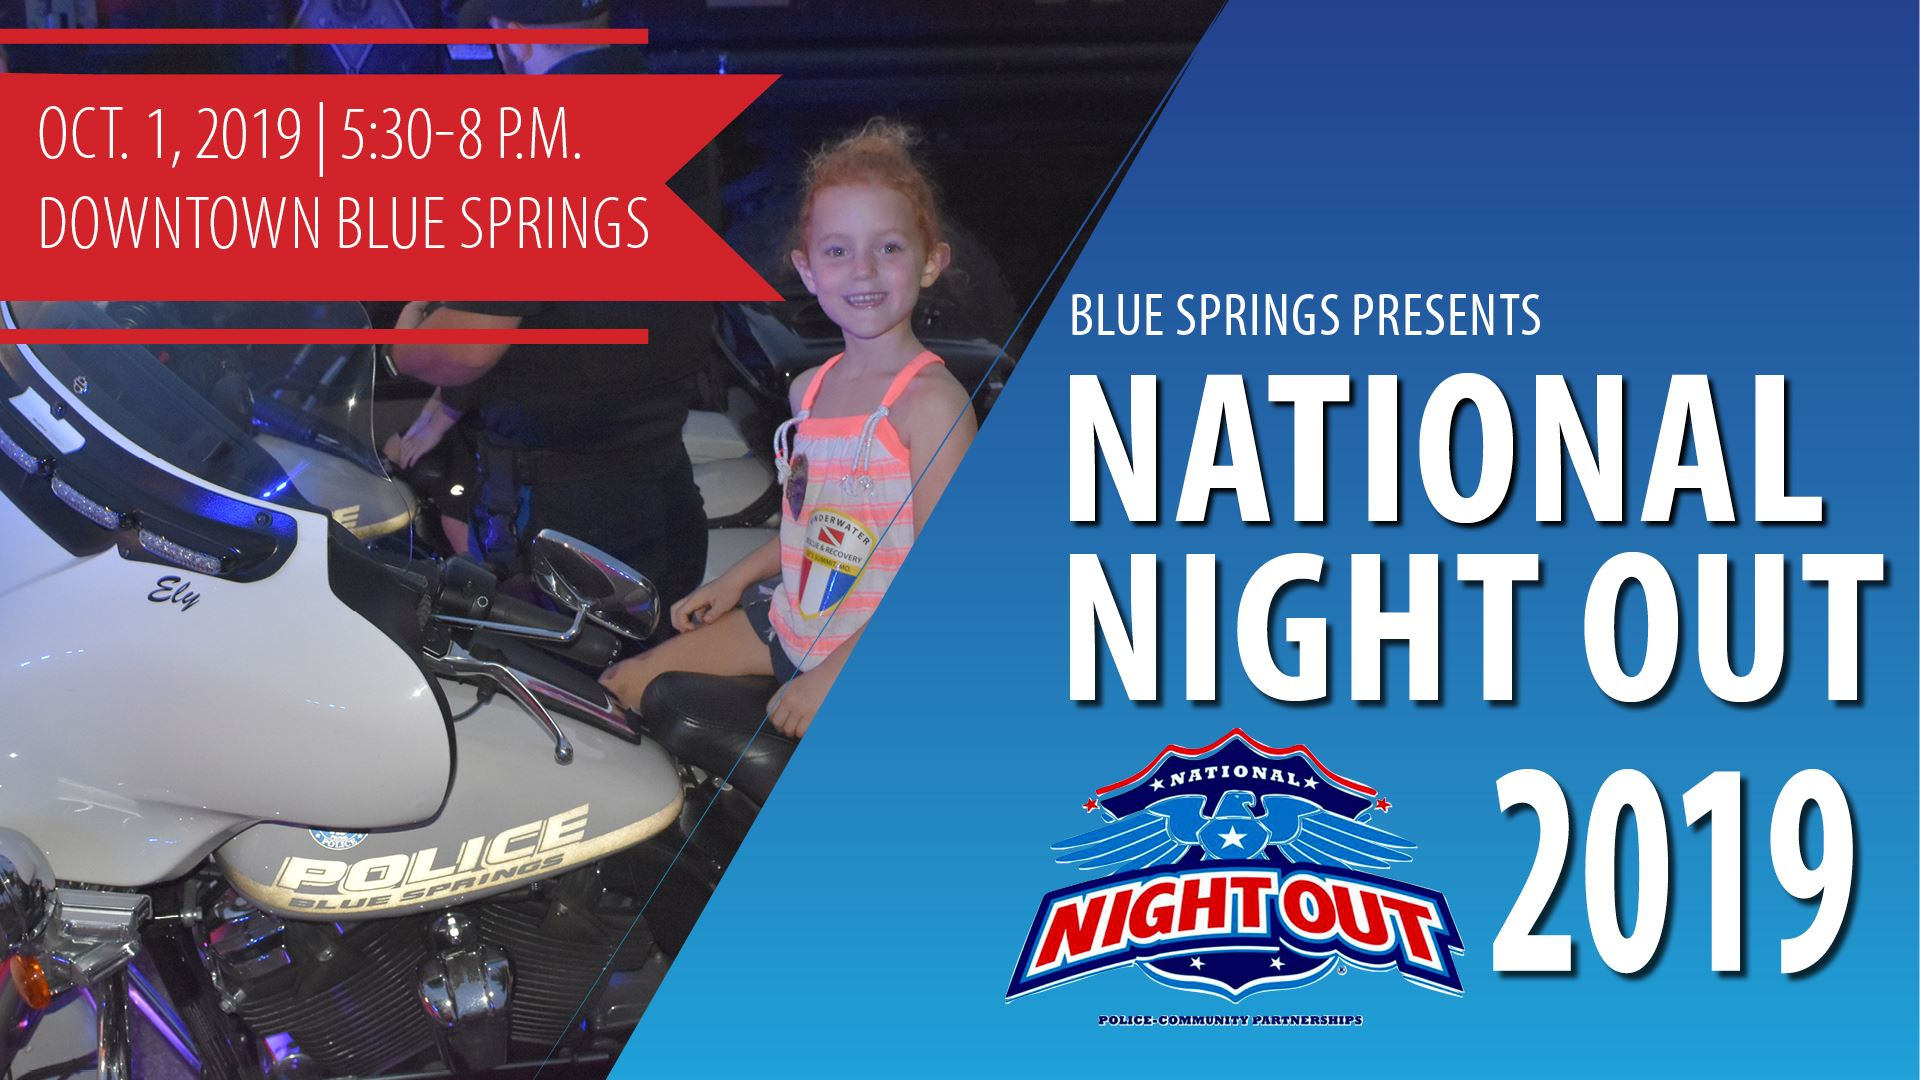 National Night Out Oct. 1, 2019